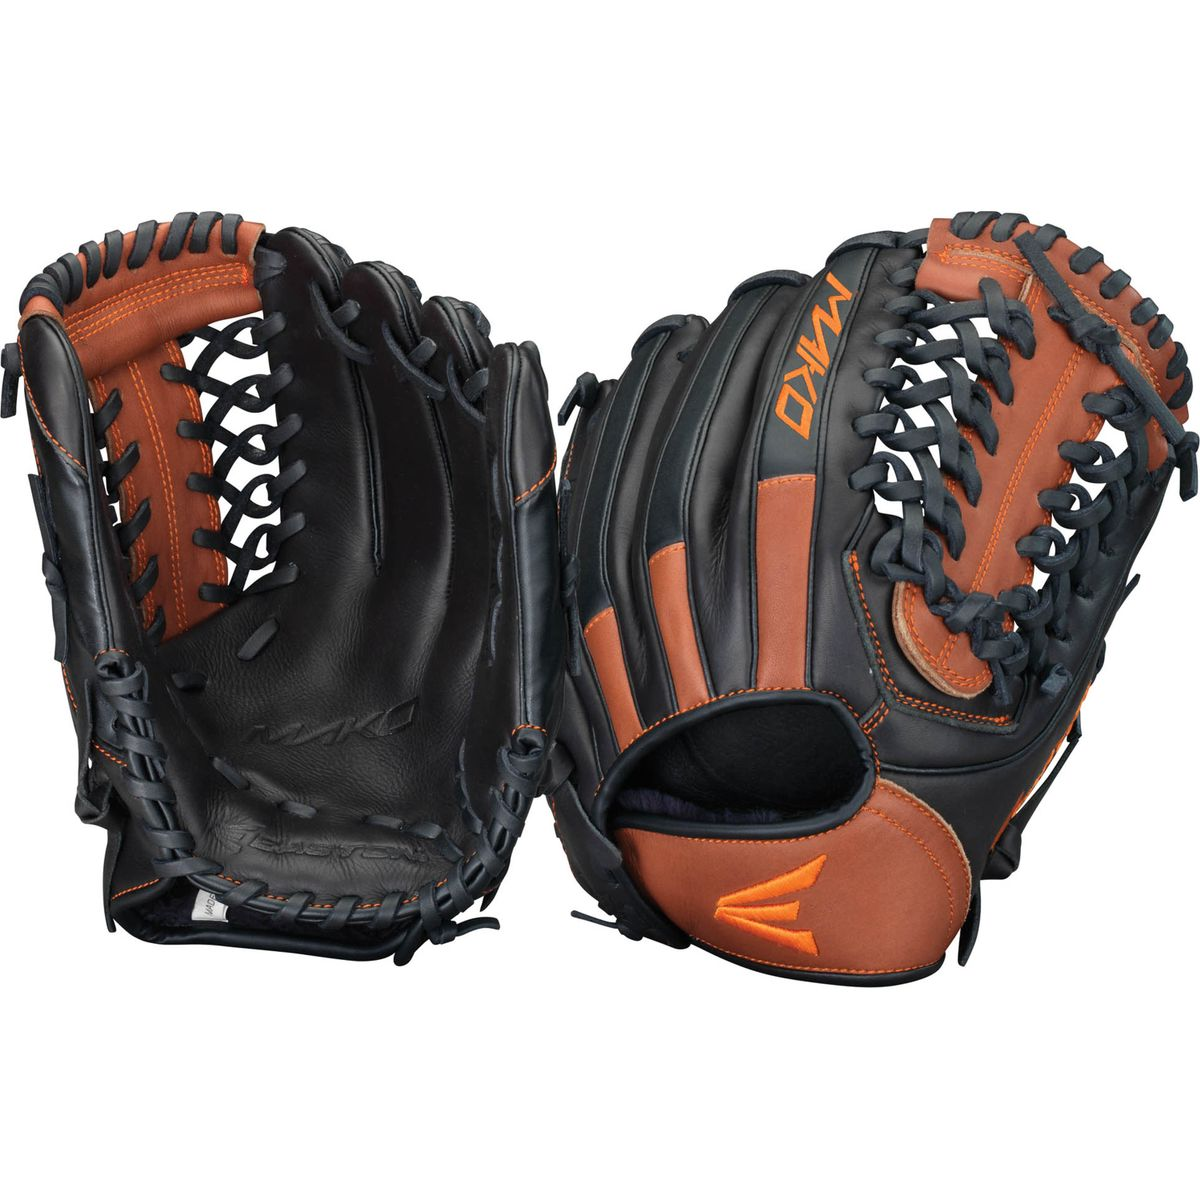 "Easton Mako Youth Series 11.5"" Baseball Glove"